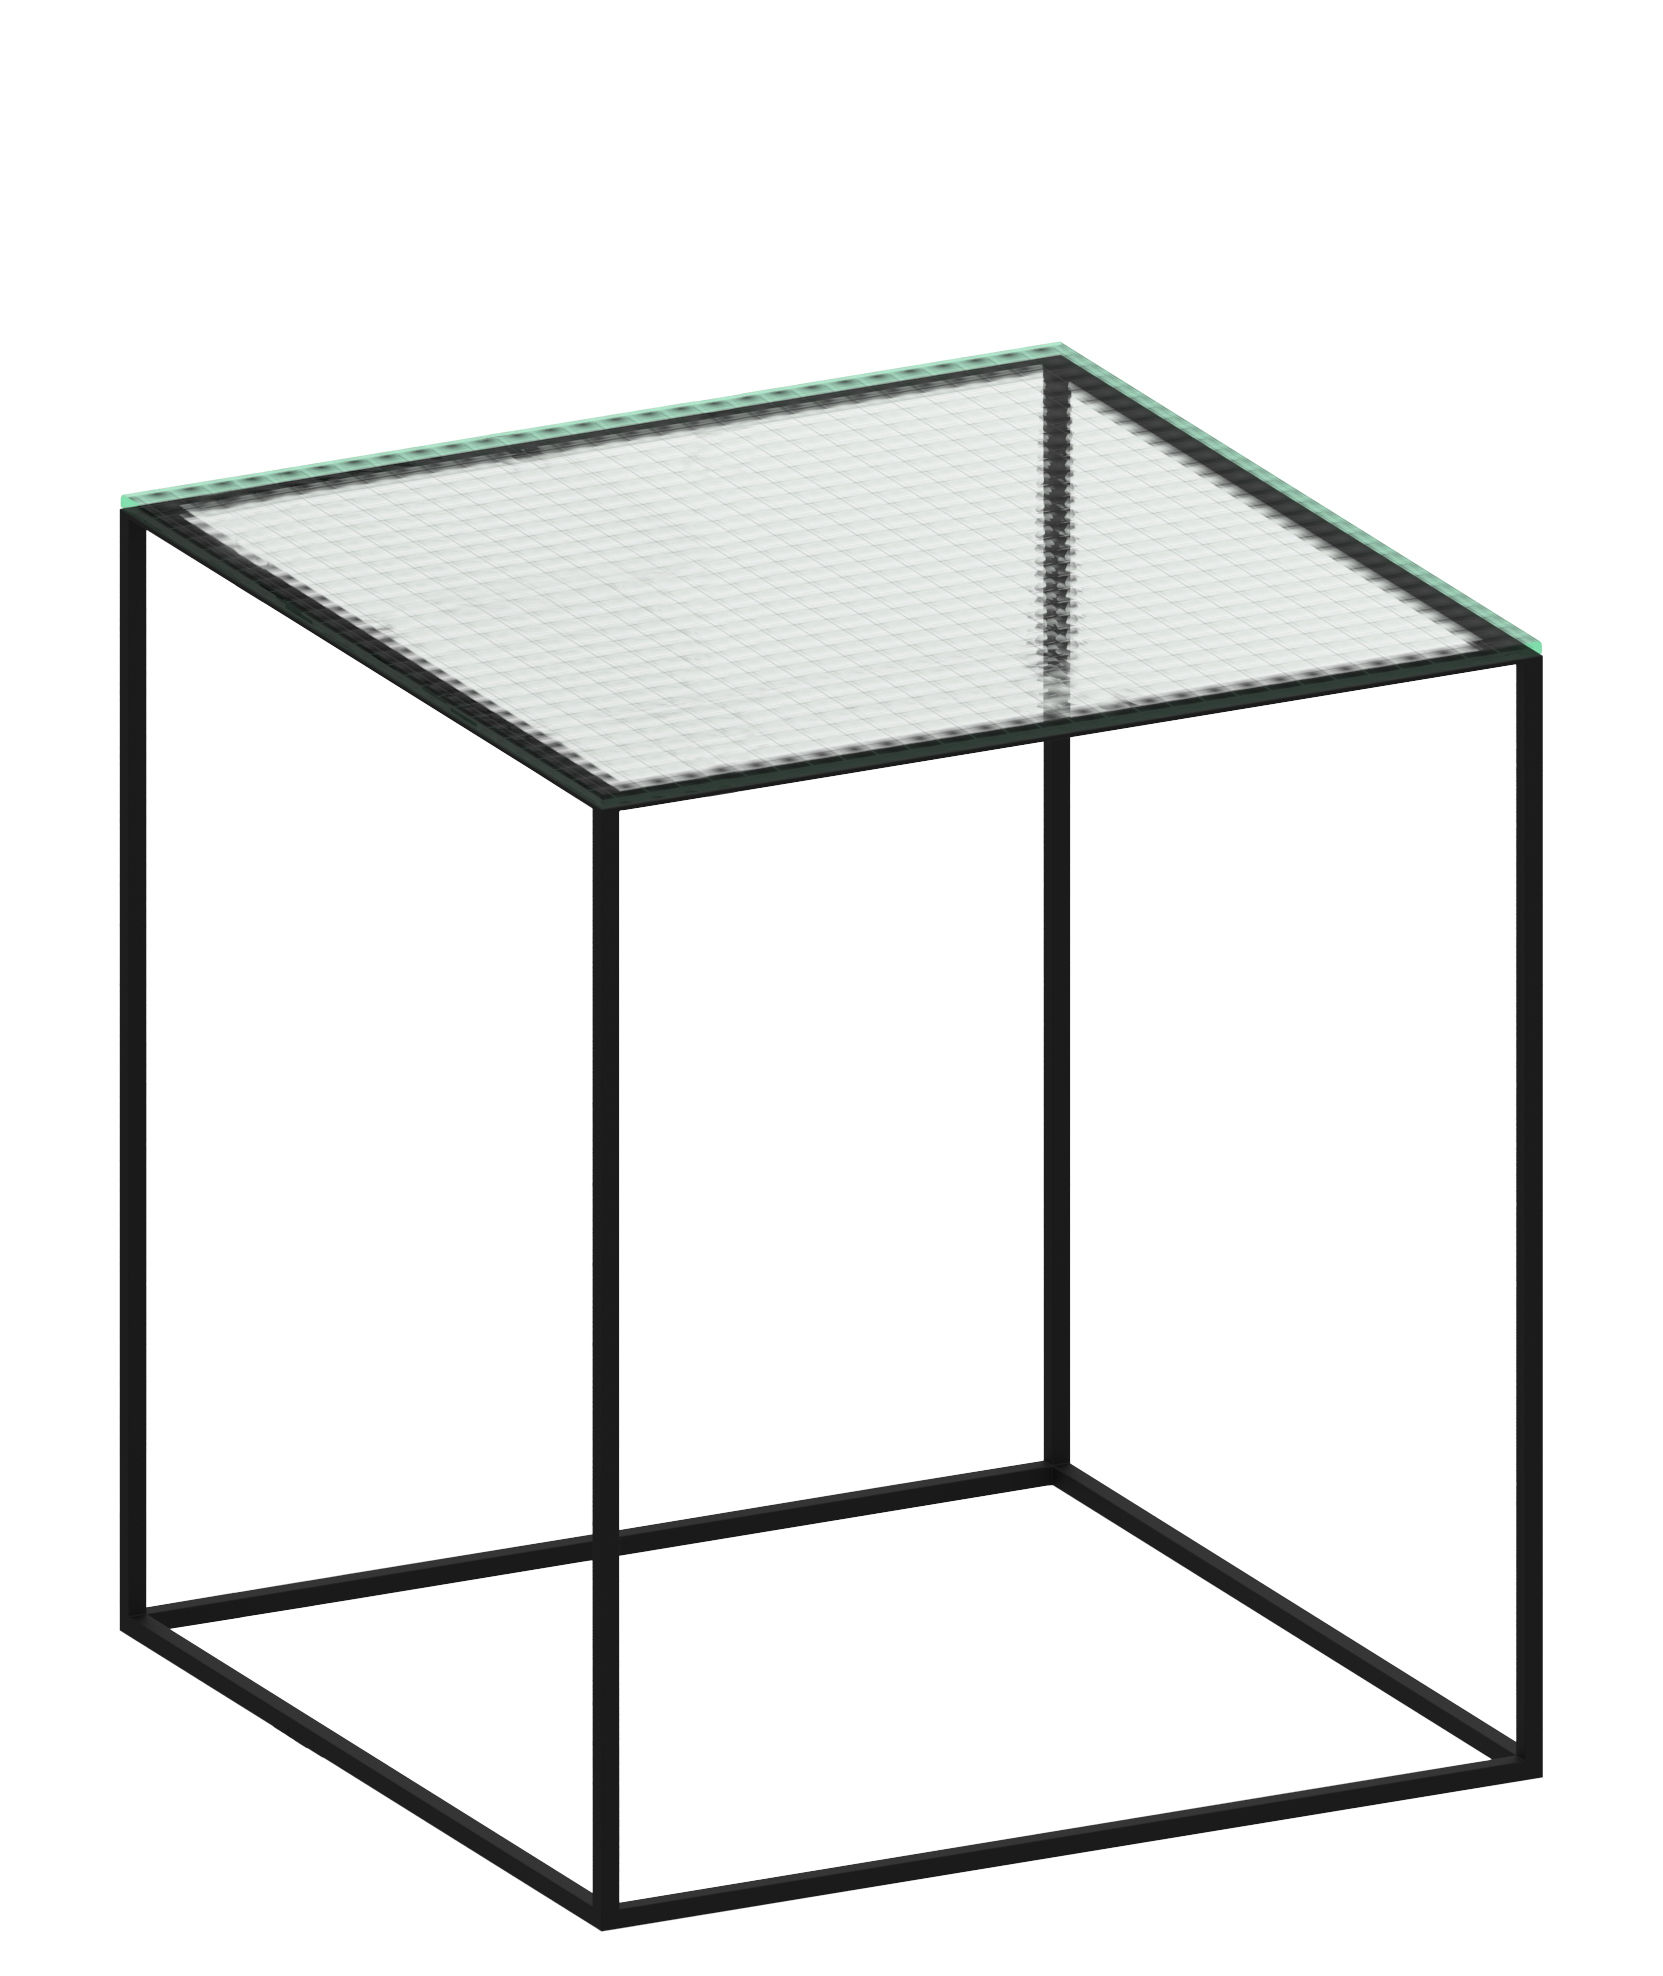 Table Appoint Verre Table D Appoint Slim Irony 41 X 41 X H 46 Cm Verre Armé Zeus